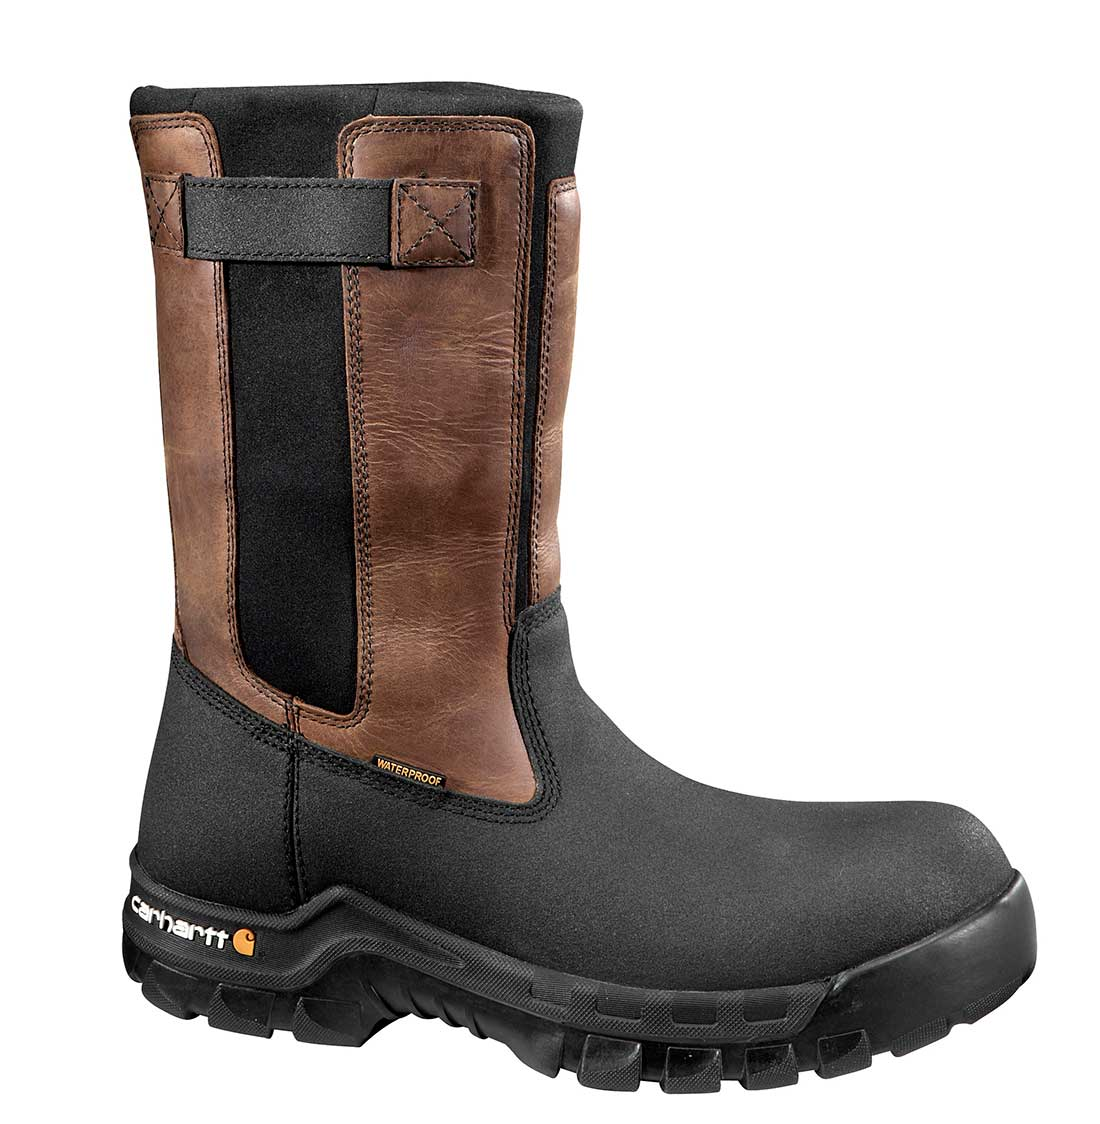 Carhartt Rugged Flex Men's Blk PU Coated Leather/Blk Neoprene with Brn Trim Waterproof 10-inch Pull-On Work Boot - Brown/Oil/Tan/Black